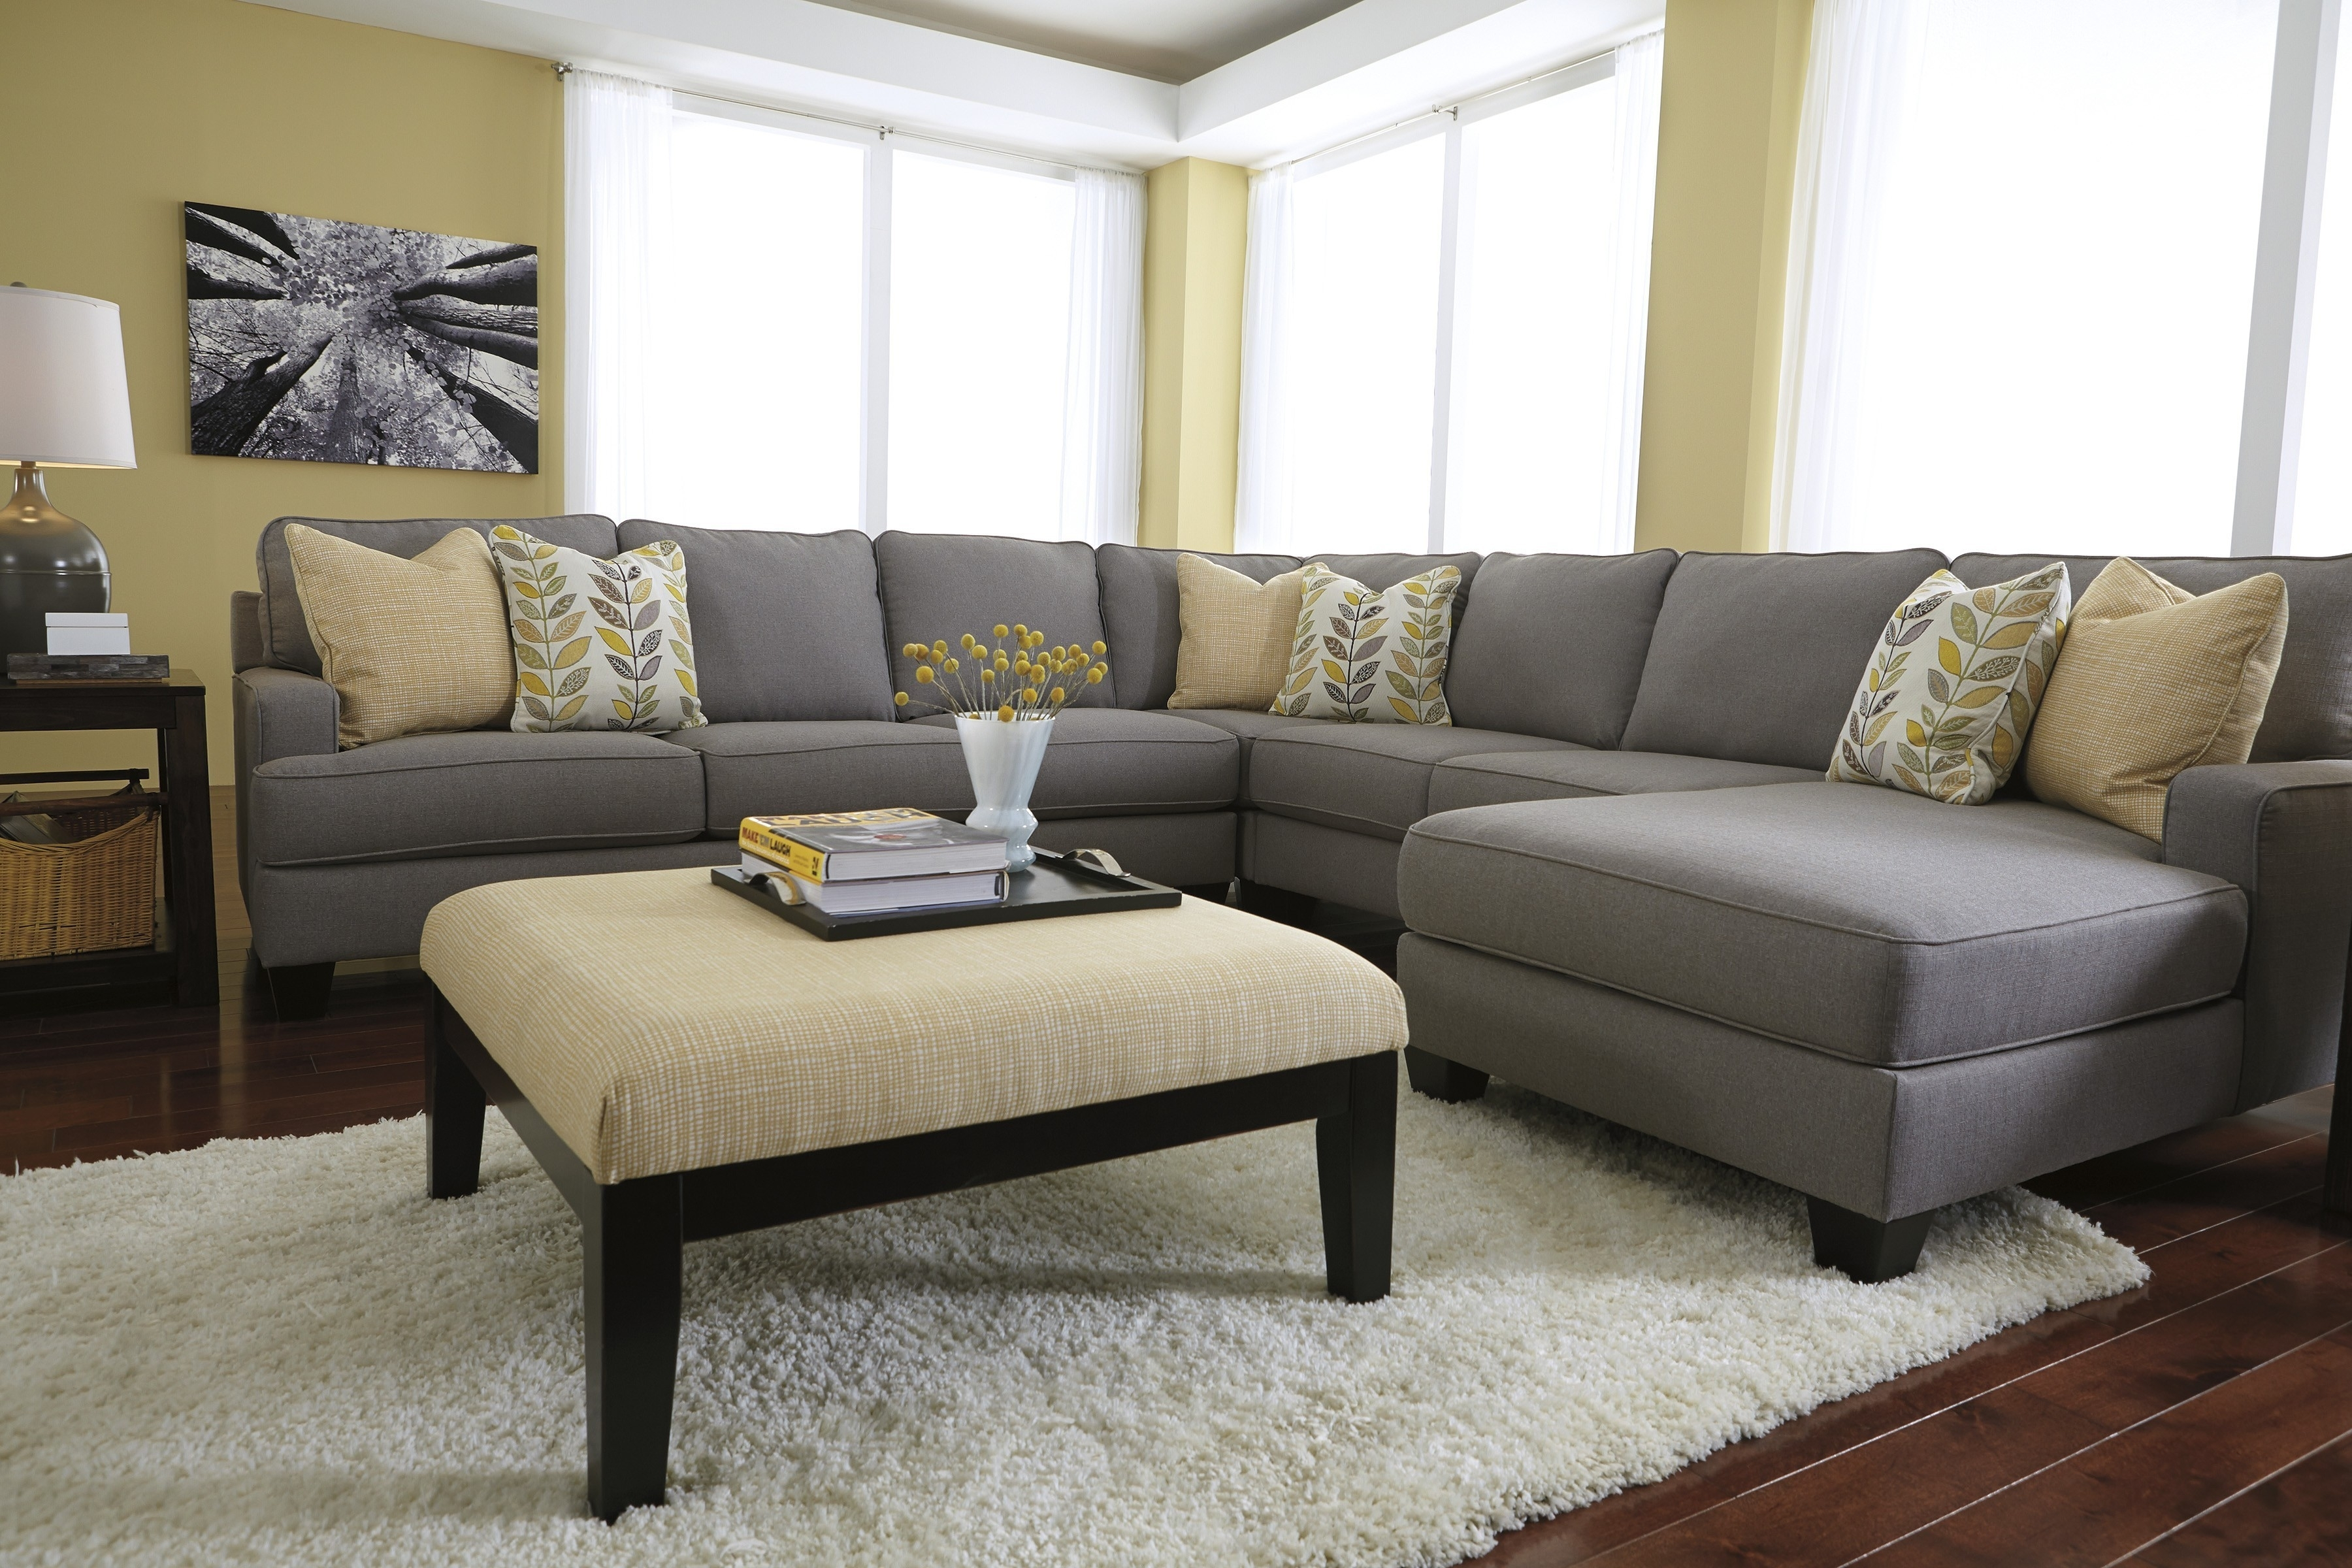 Why You Should Choose A Small Sectional Sofas | Ifresh Design Within Small Sectional Sofas With Chaise And Ottoman (View 8 of 10)